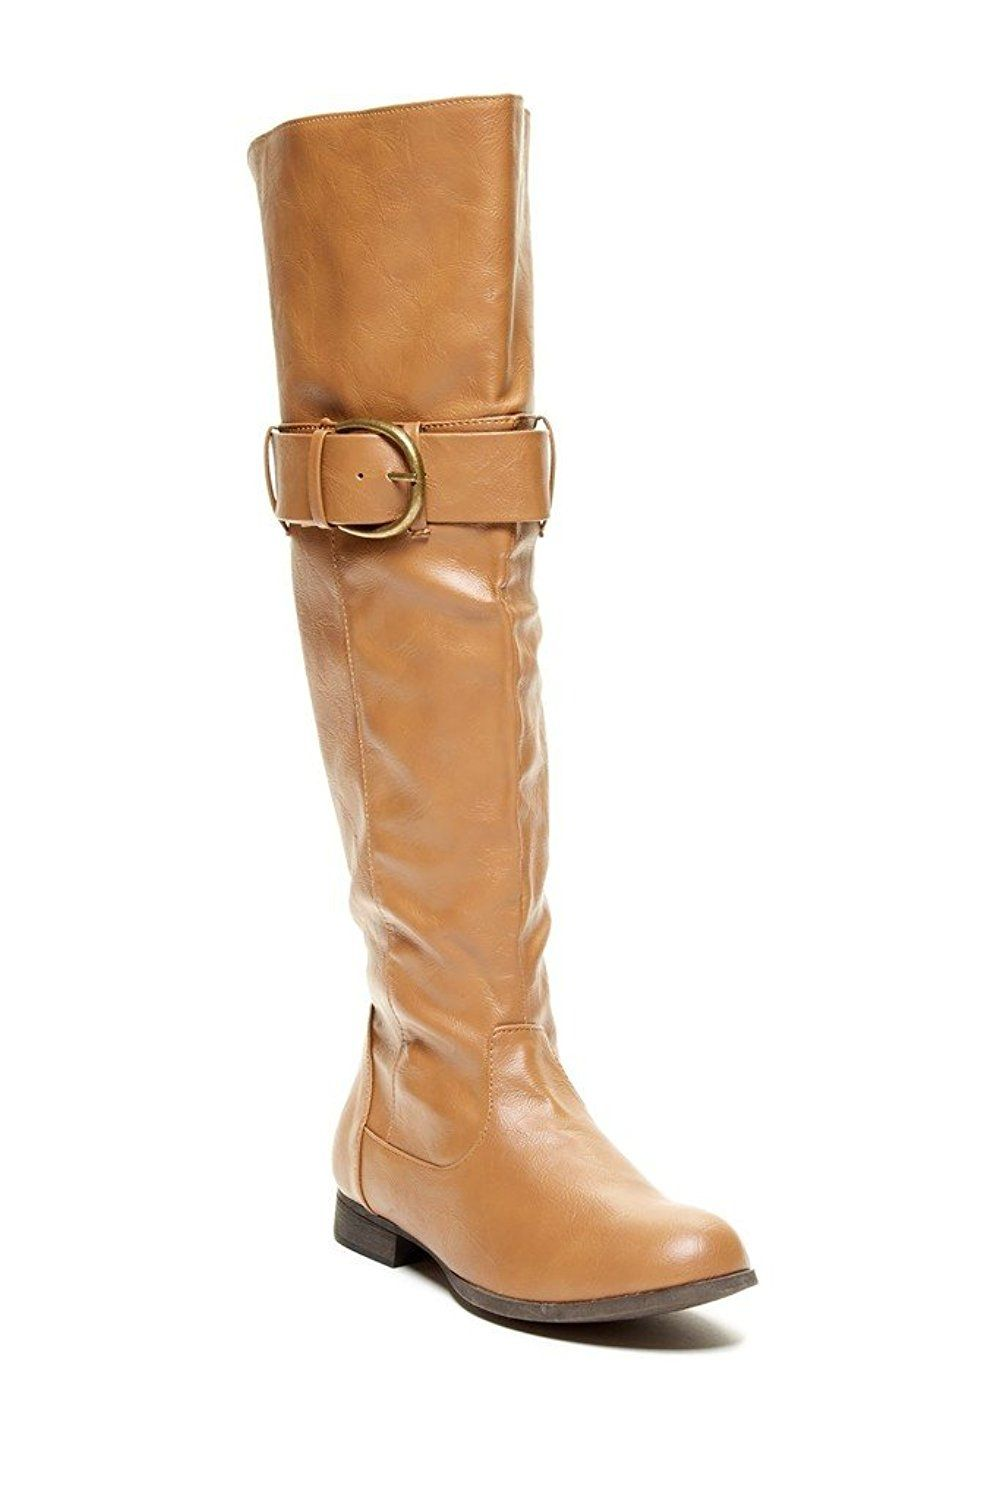 Charles Albert Damens's Tall Riding Riding Riding Boot with Buckle Accent ... 9308bd